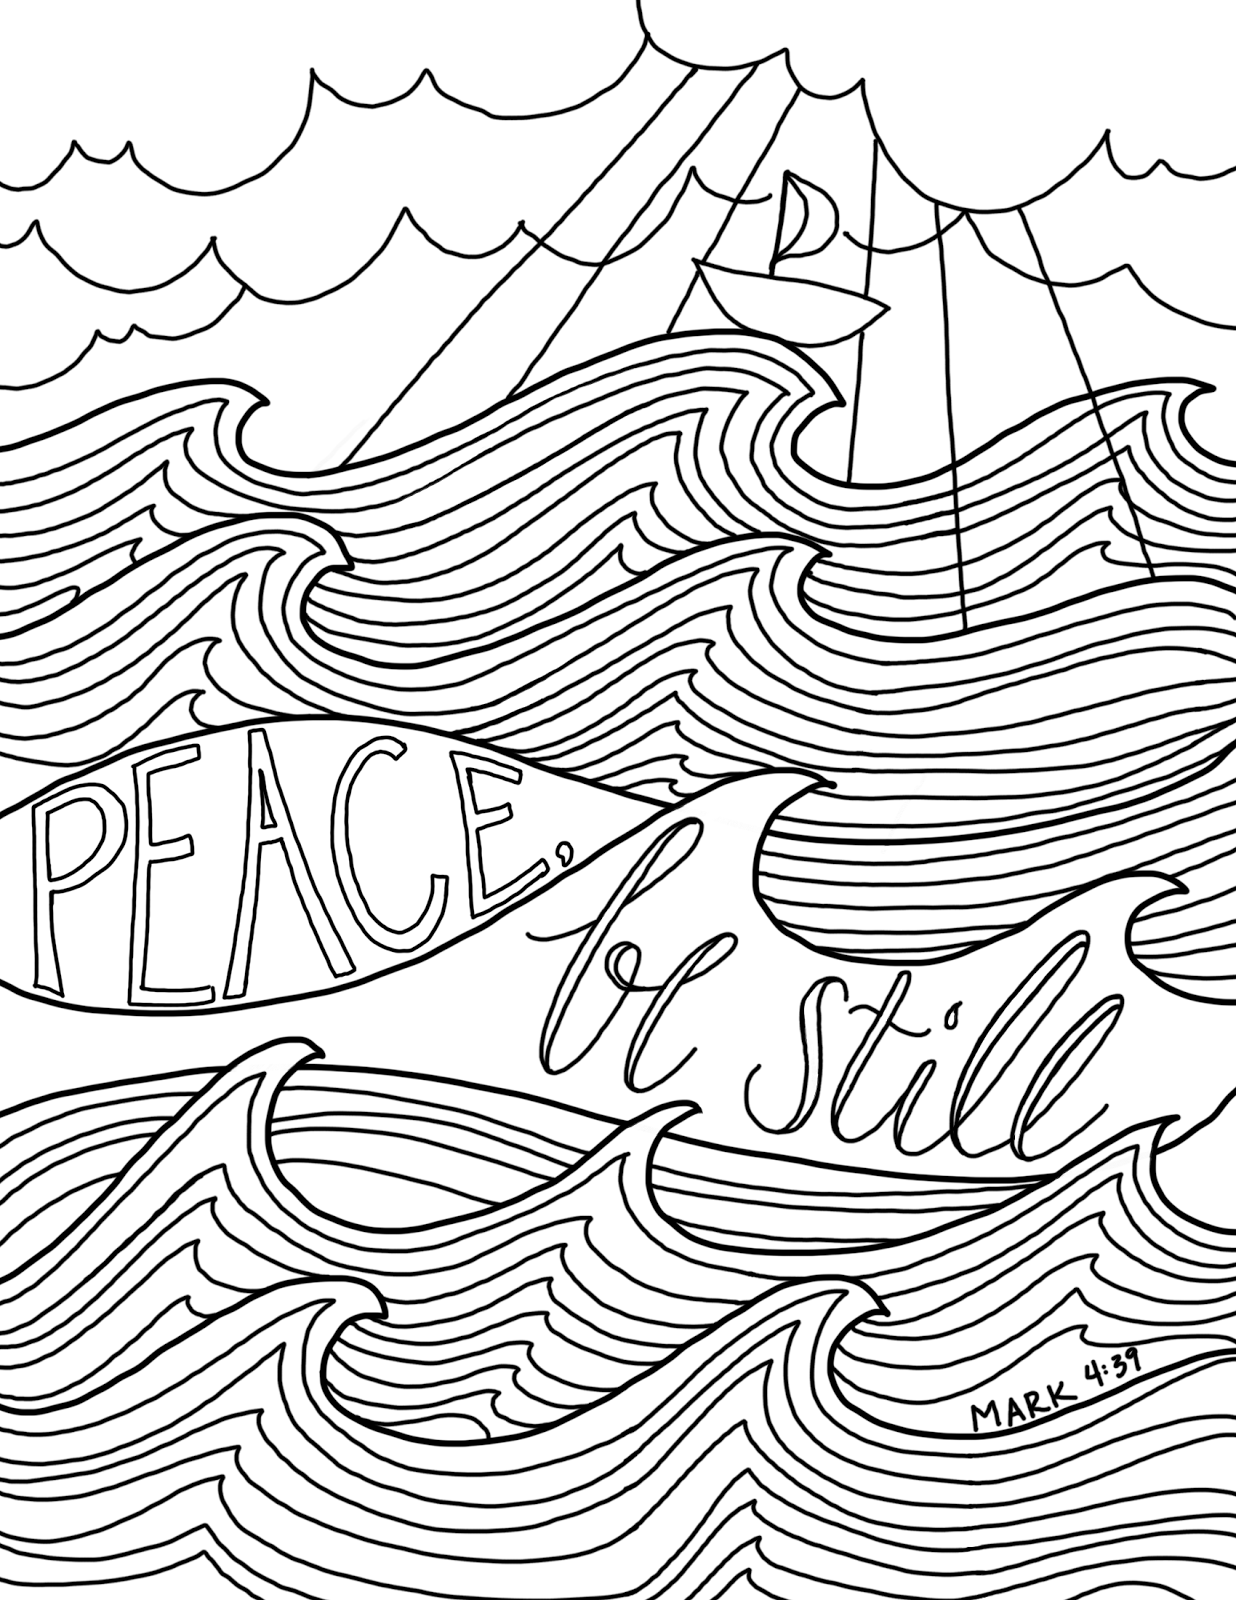 Peace, Be Still -- a new coloring page! | Bible coloring pages, Bible  coloring, Coloring pages